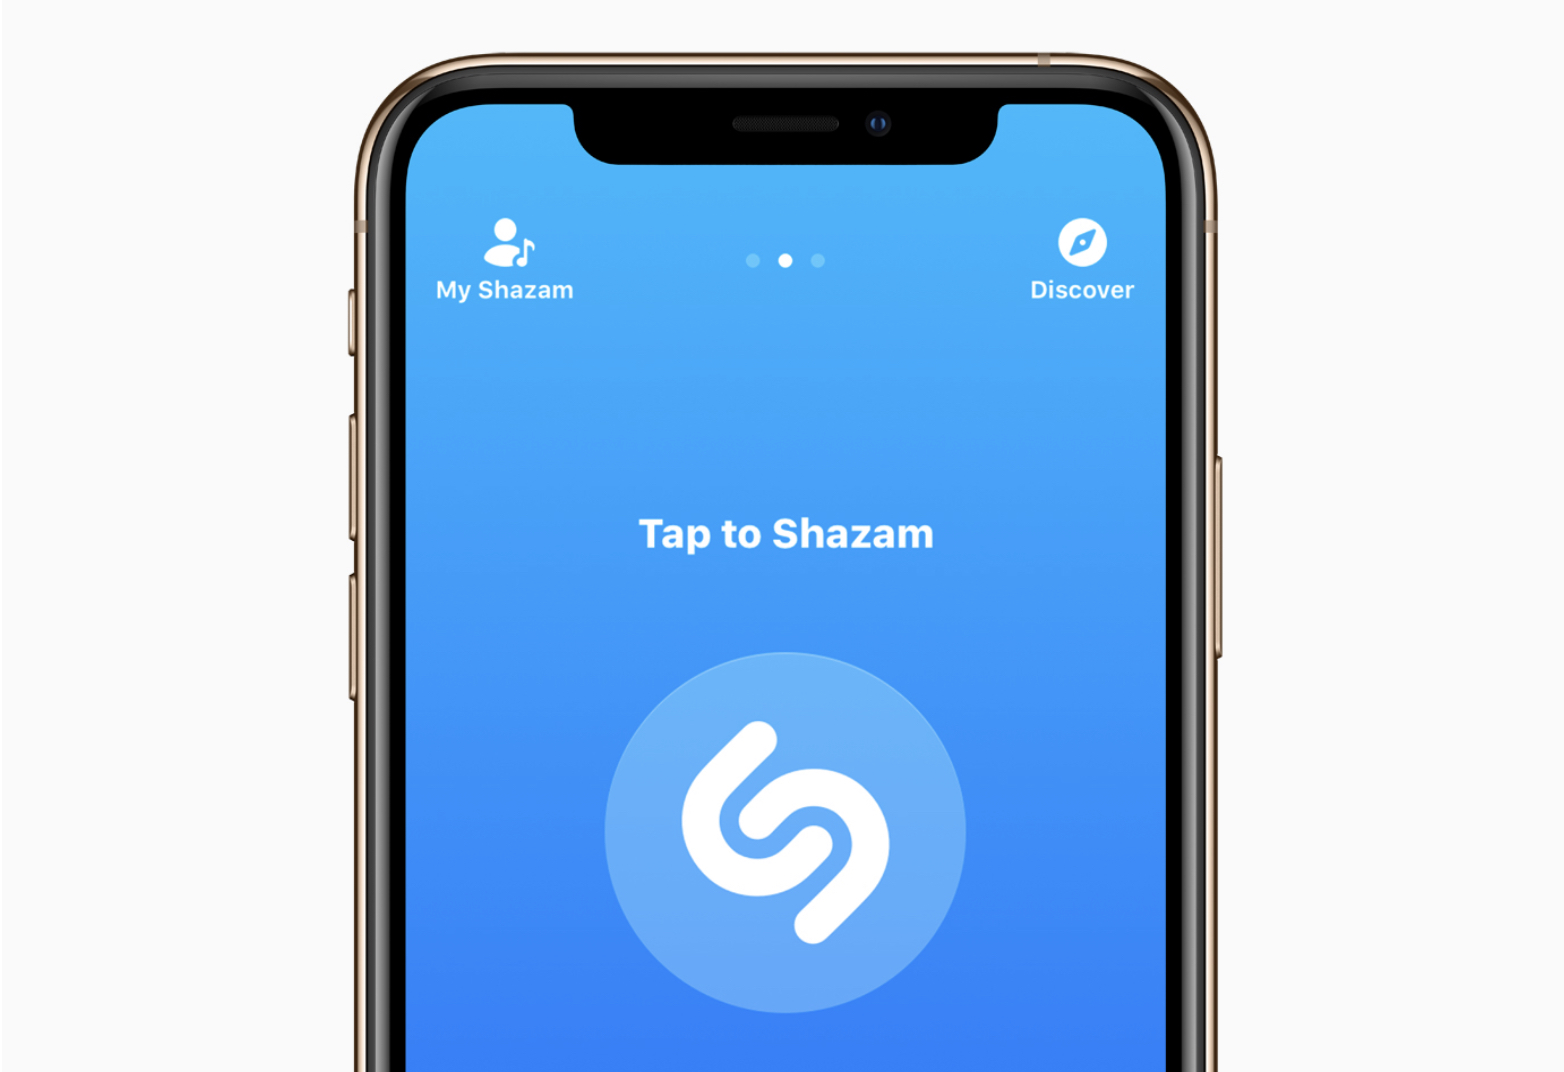 QnA VBage Apple pulls third-party SDKs from Shazam in latest update